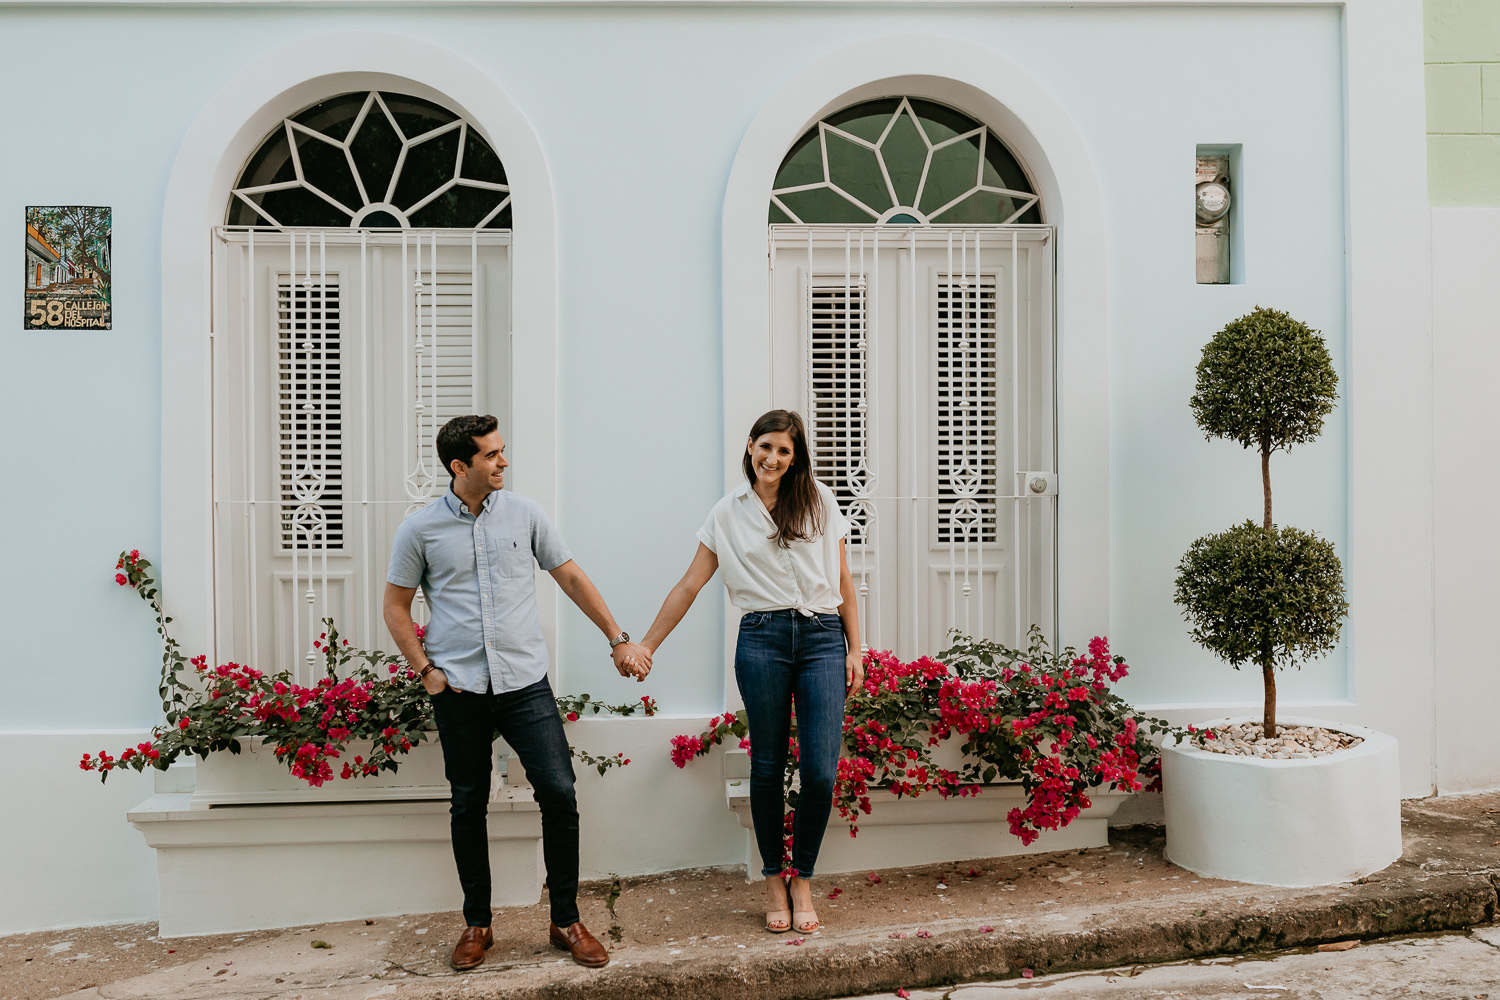 couple standing side by side holding hands in front of sky blue house with red flowers